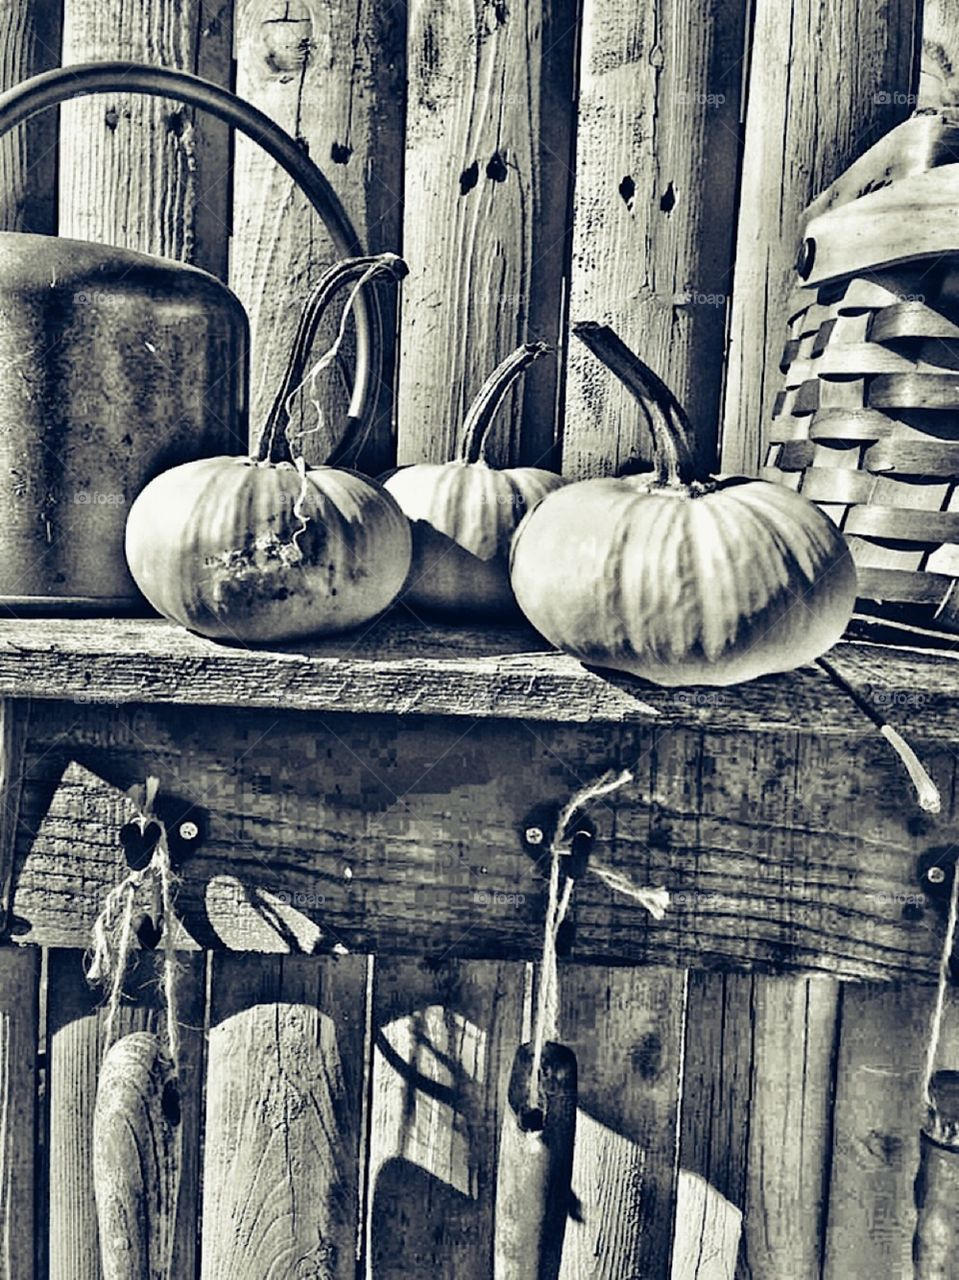 Rustic wood garden fence and shelf with miniature pumpkins old copper watering can ,  a basket and hanging garden tools outside decoration